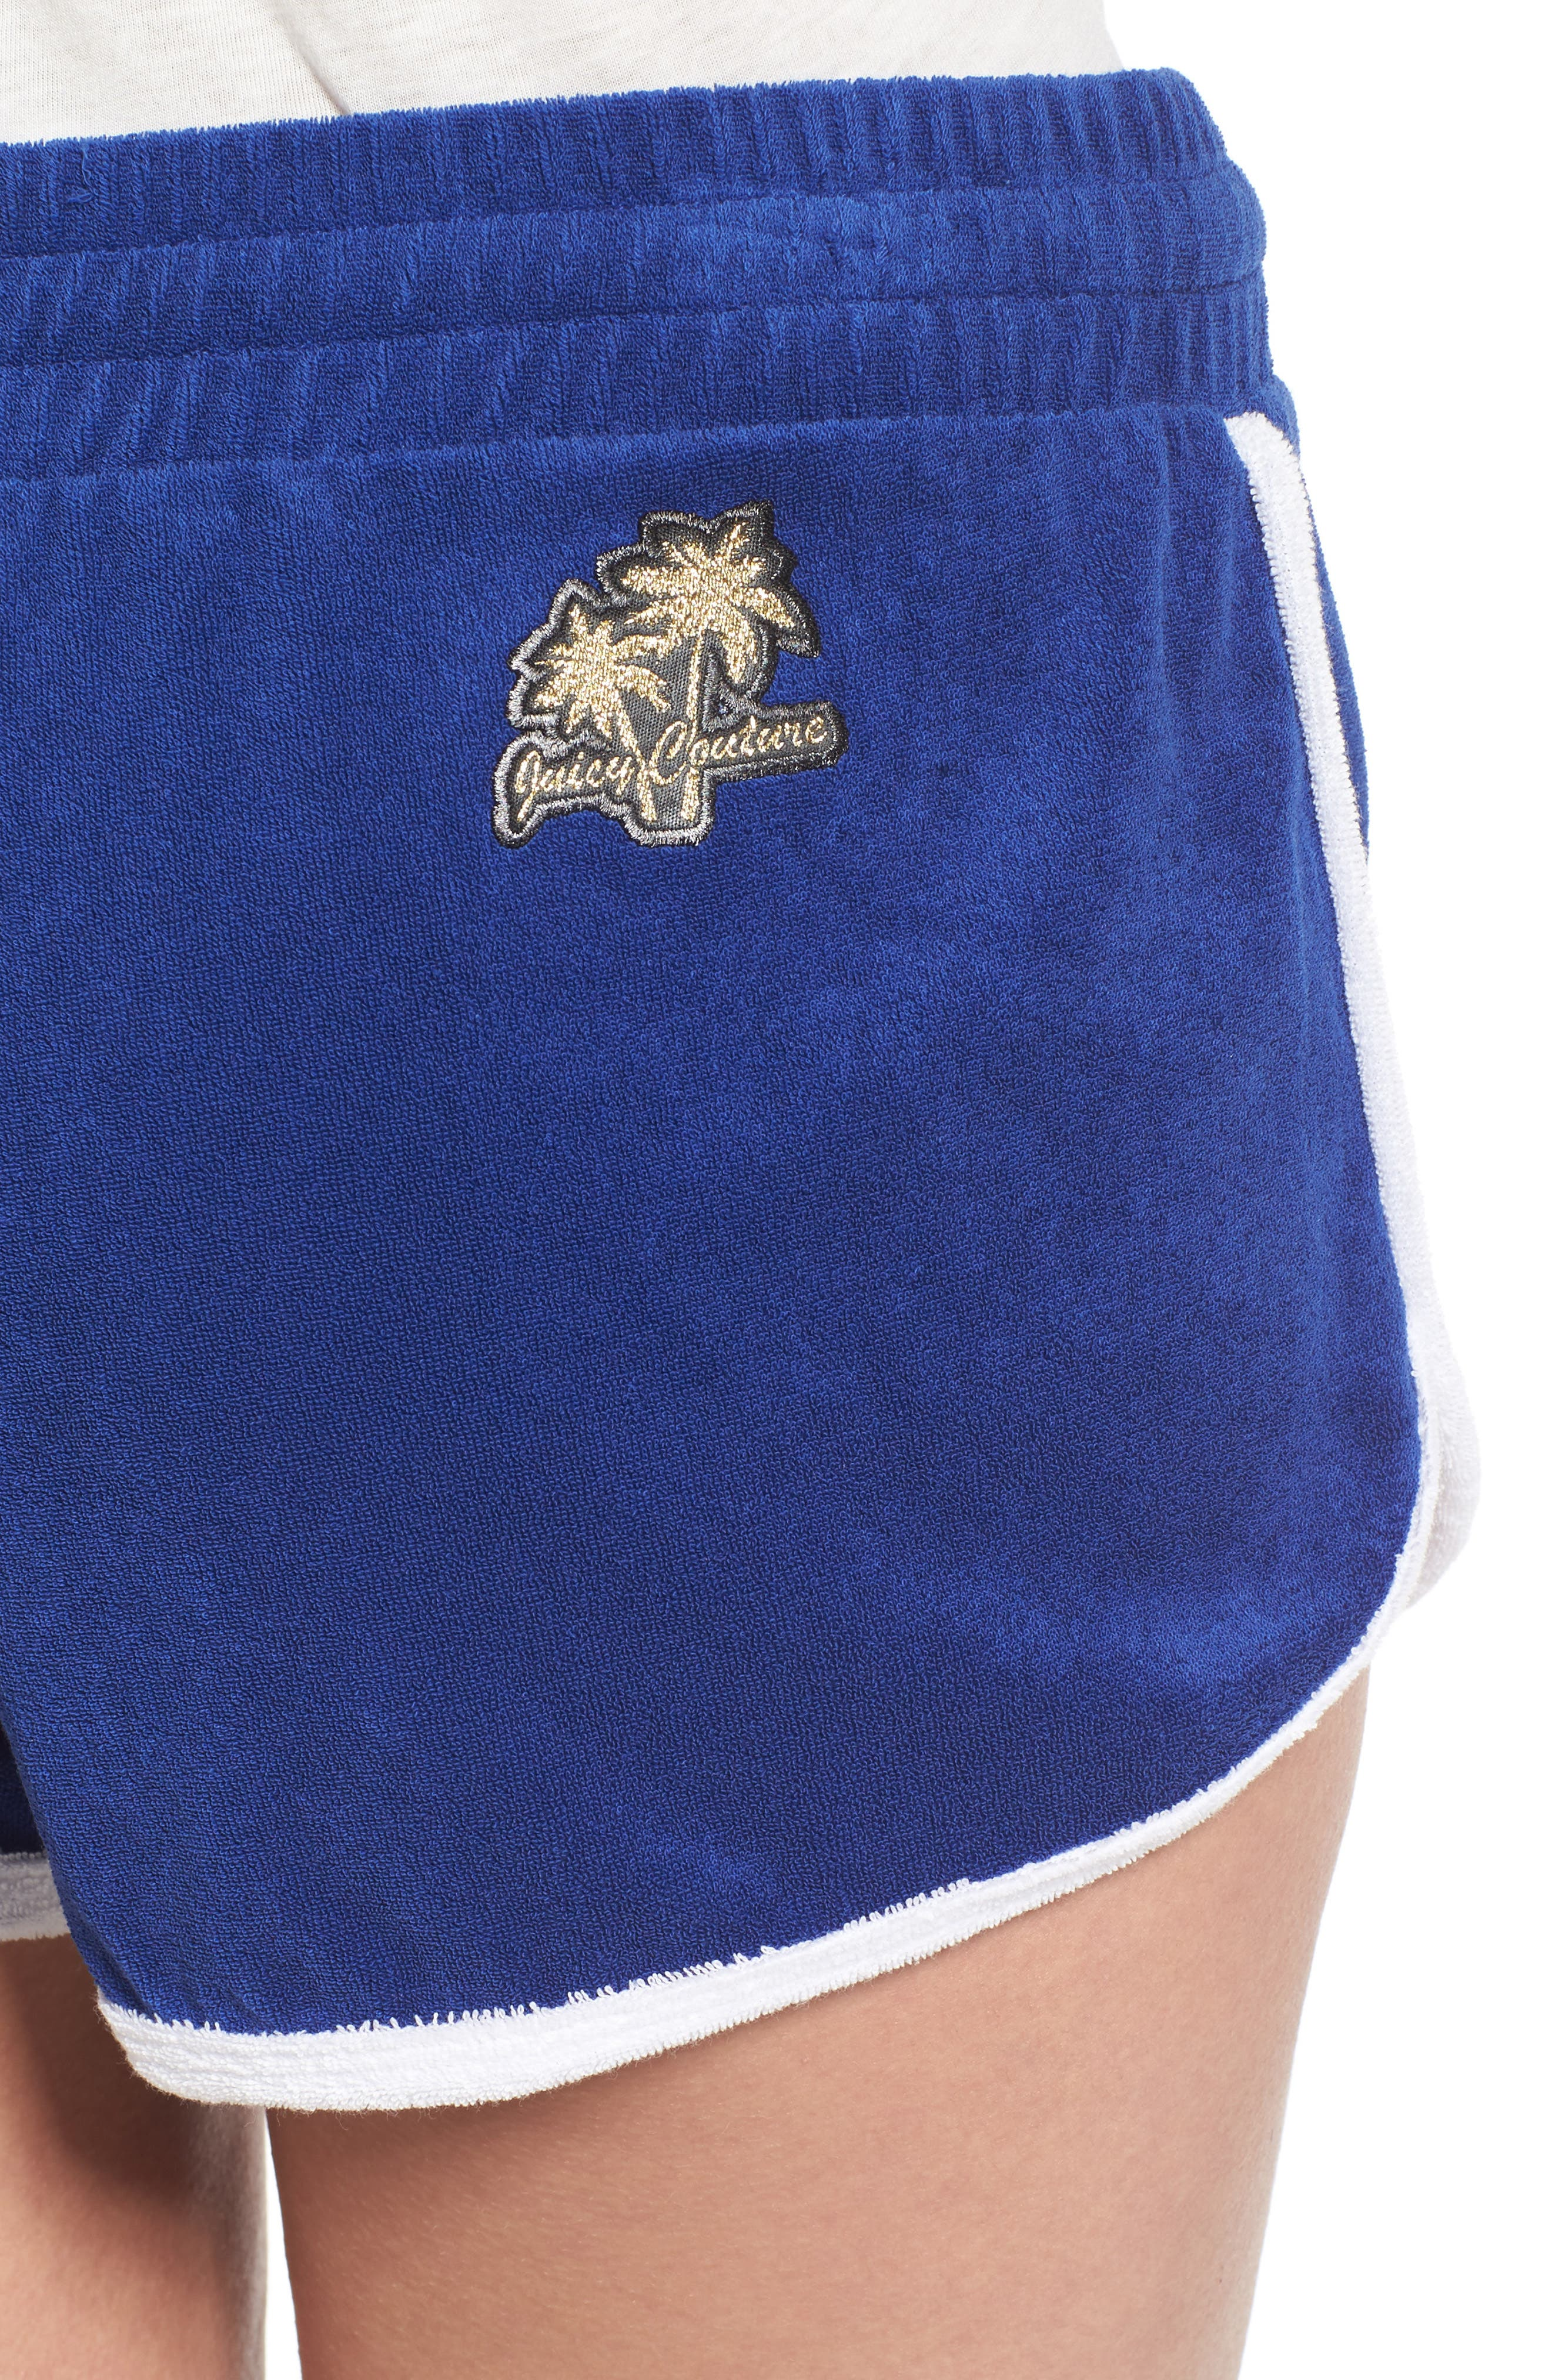 Venice Beach Microterry Shorts,                             Alternate thumbnail 8, color,